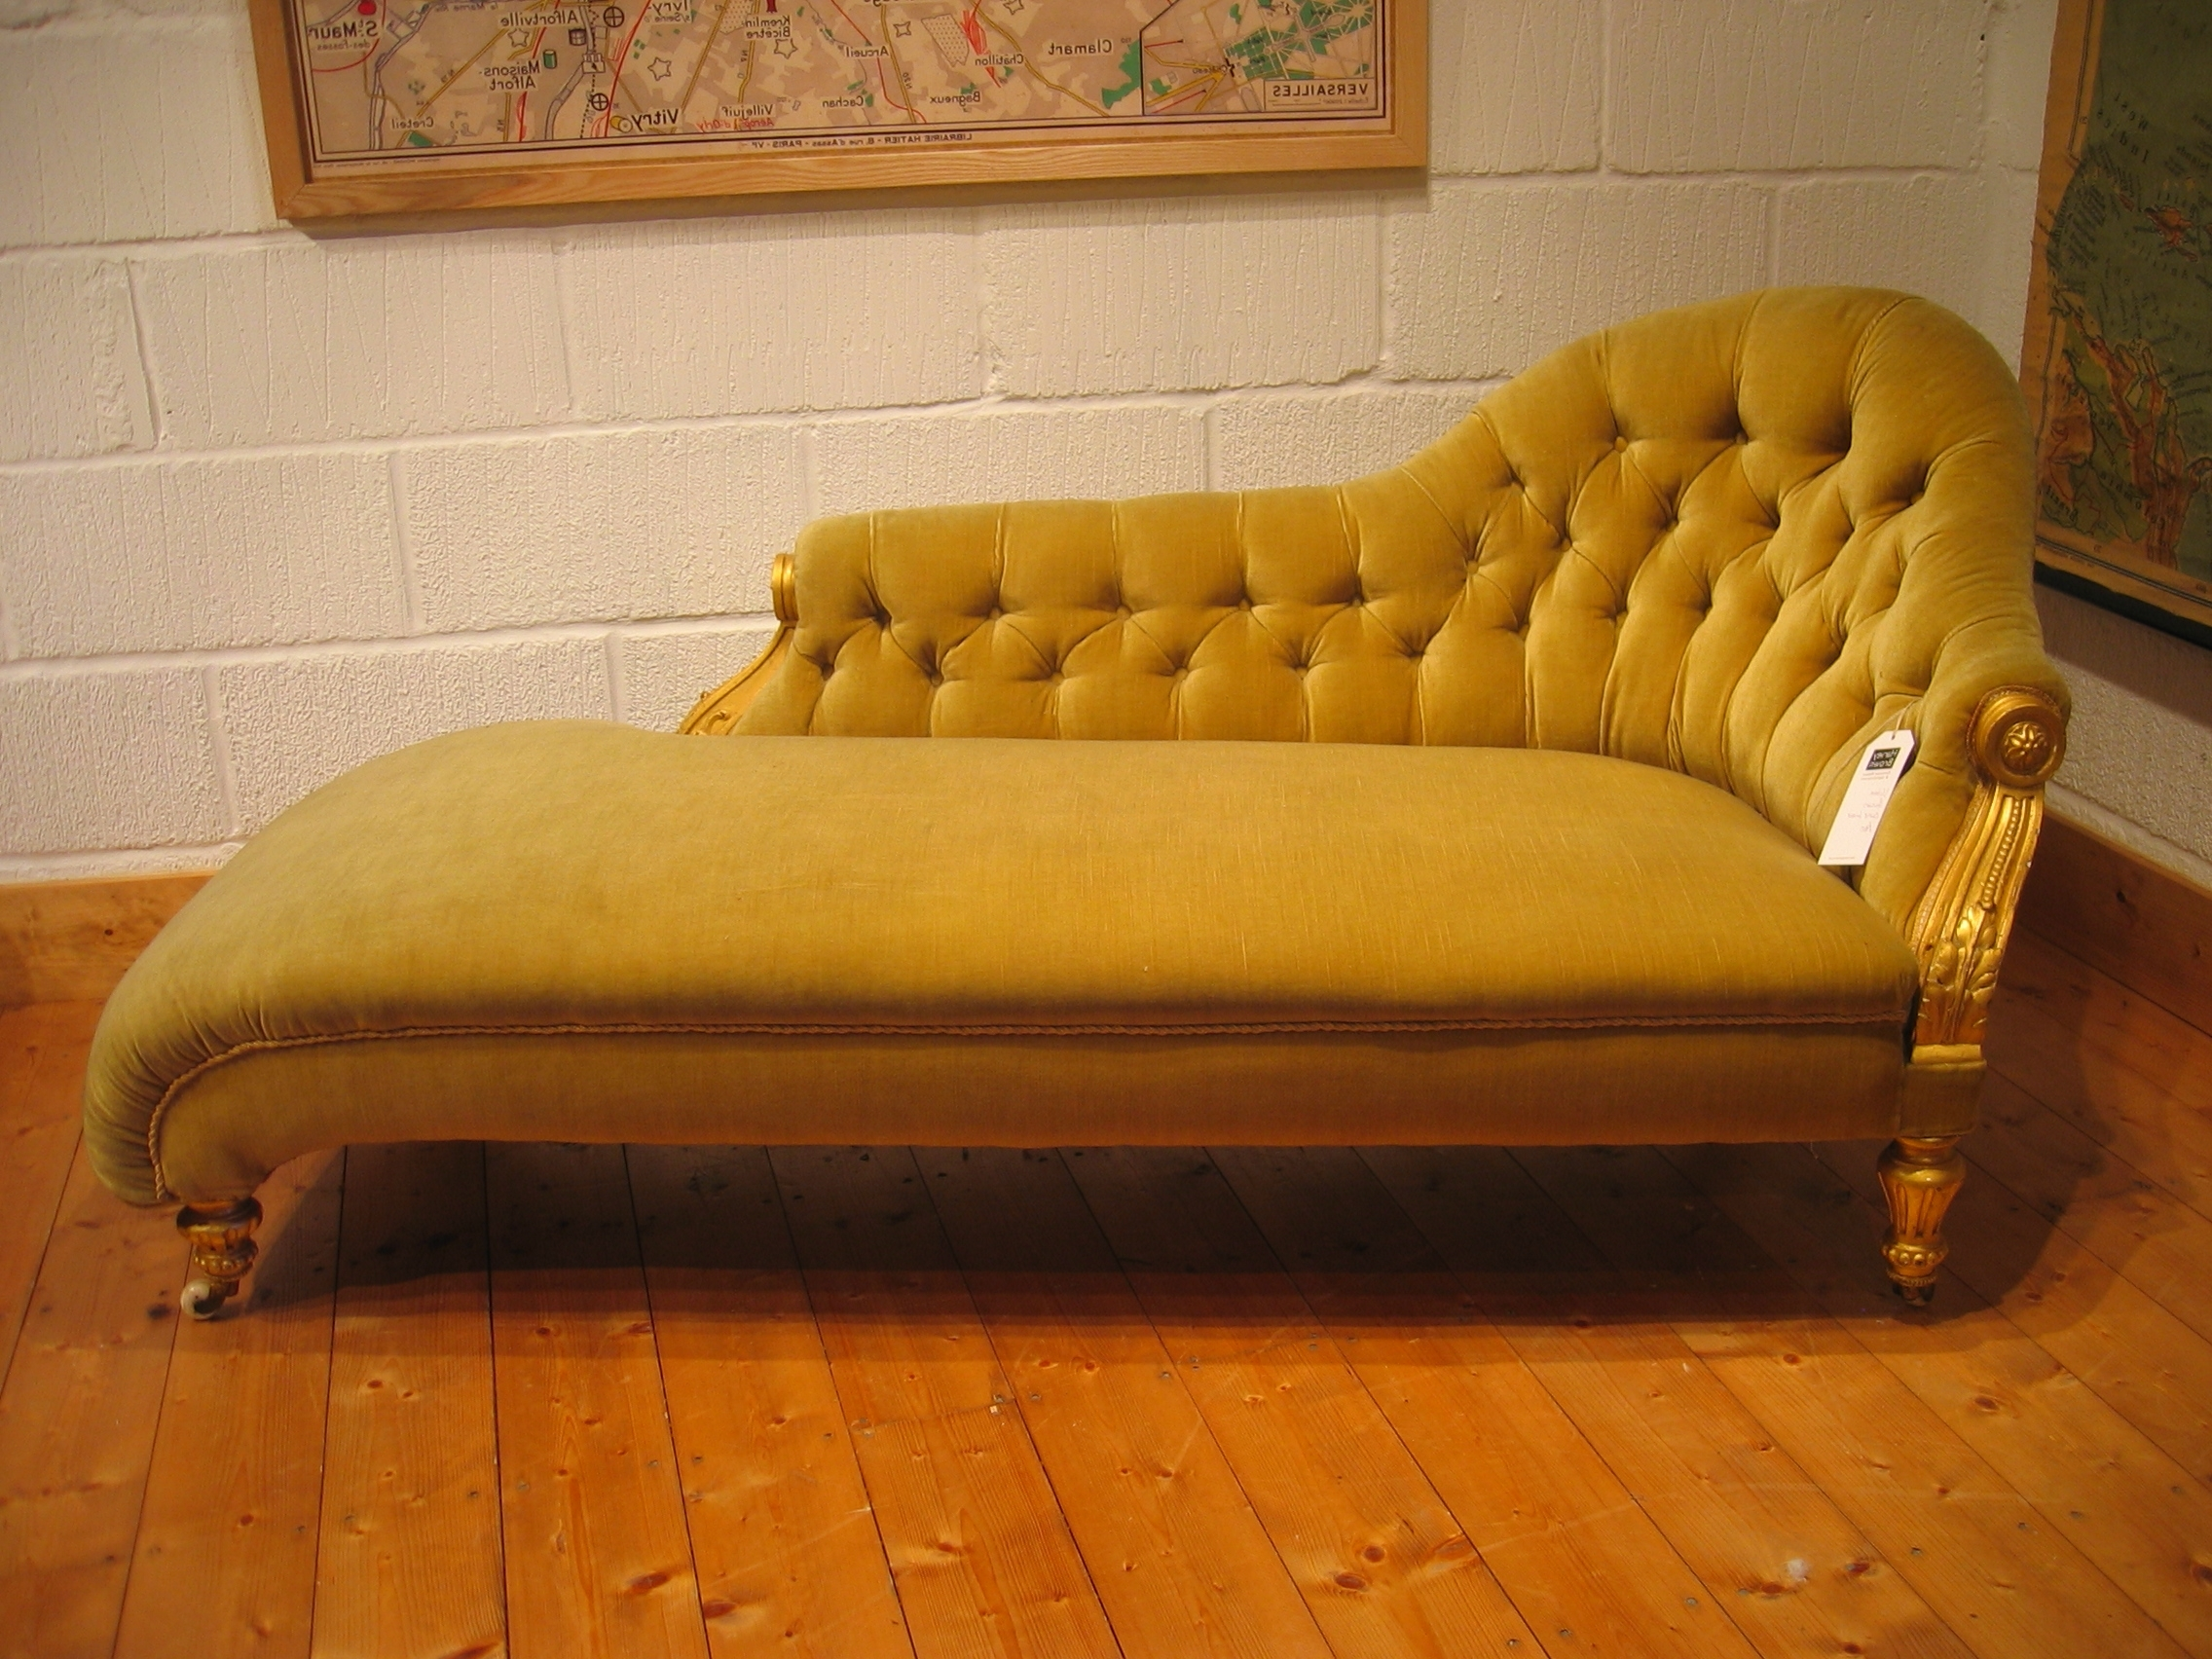 Fullsize Of Small Chaise Lounge Couch